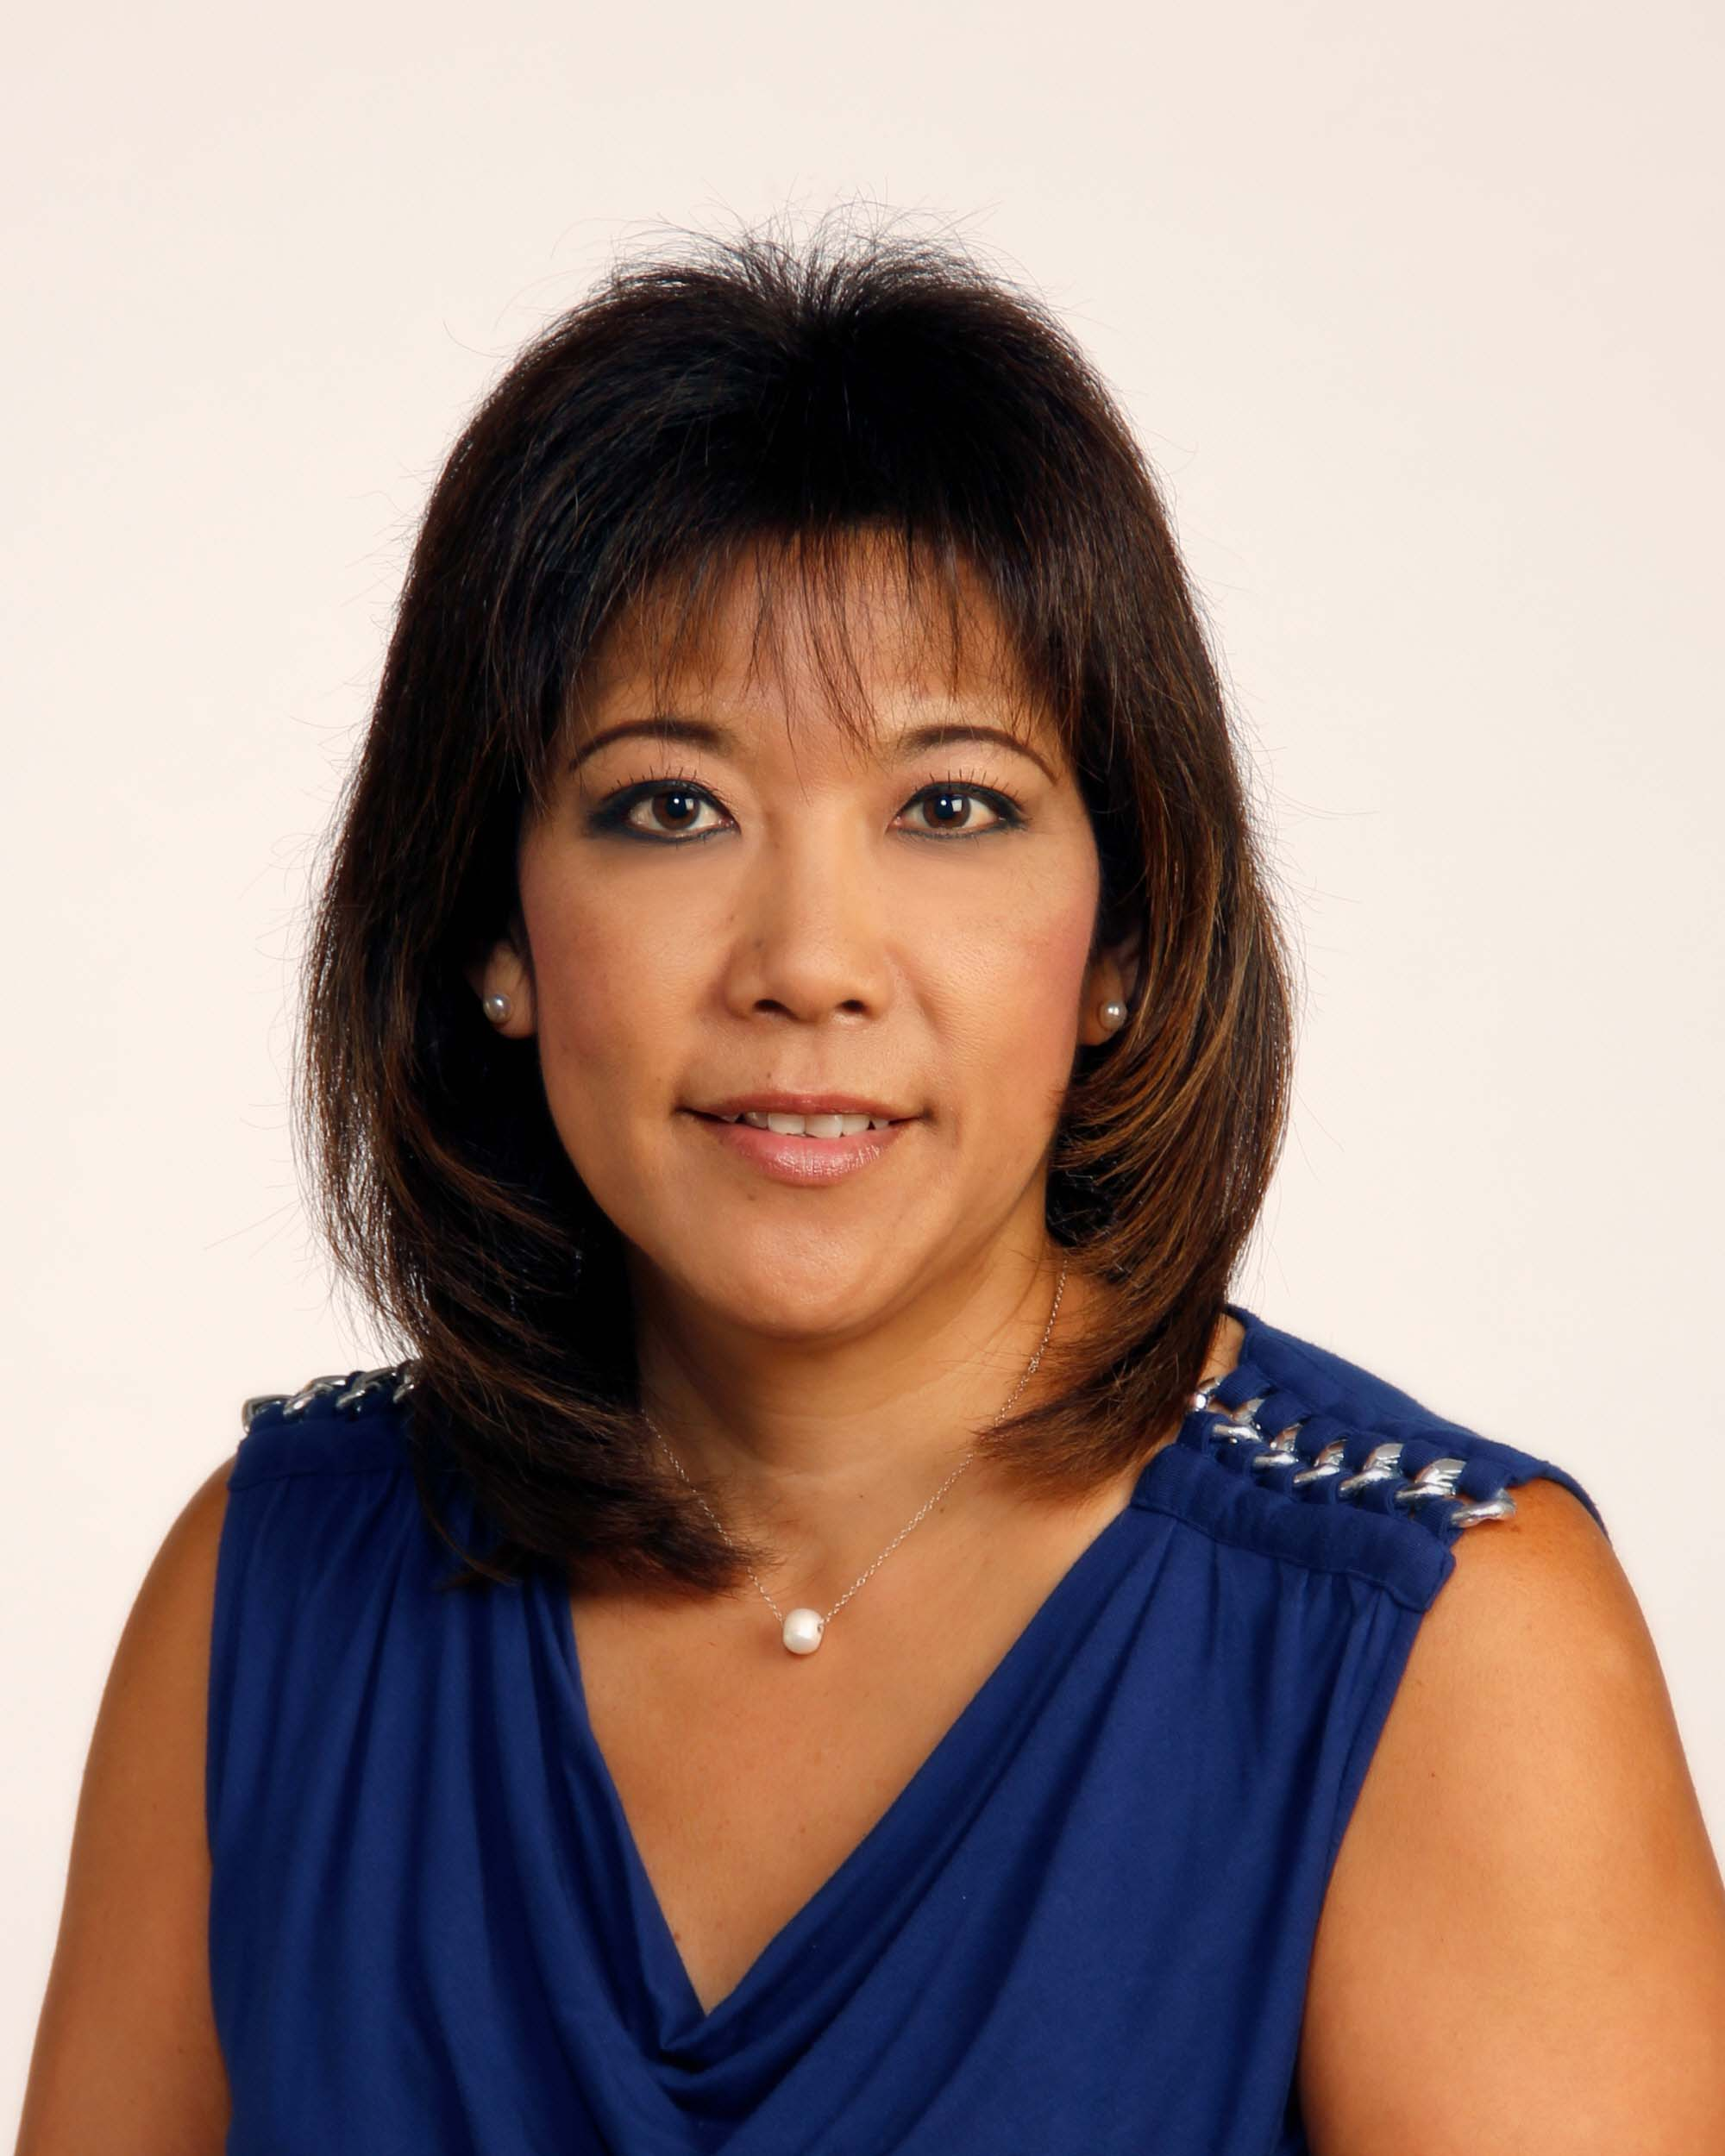 Hawaii Real Estate Agent Property Manager Darlene A. Higa